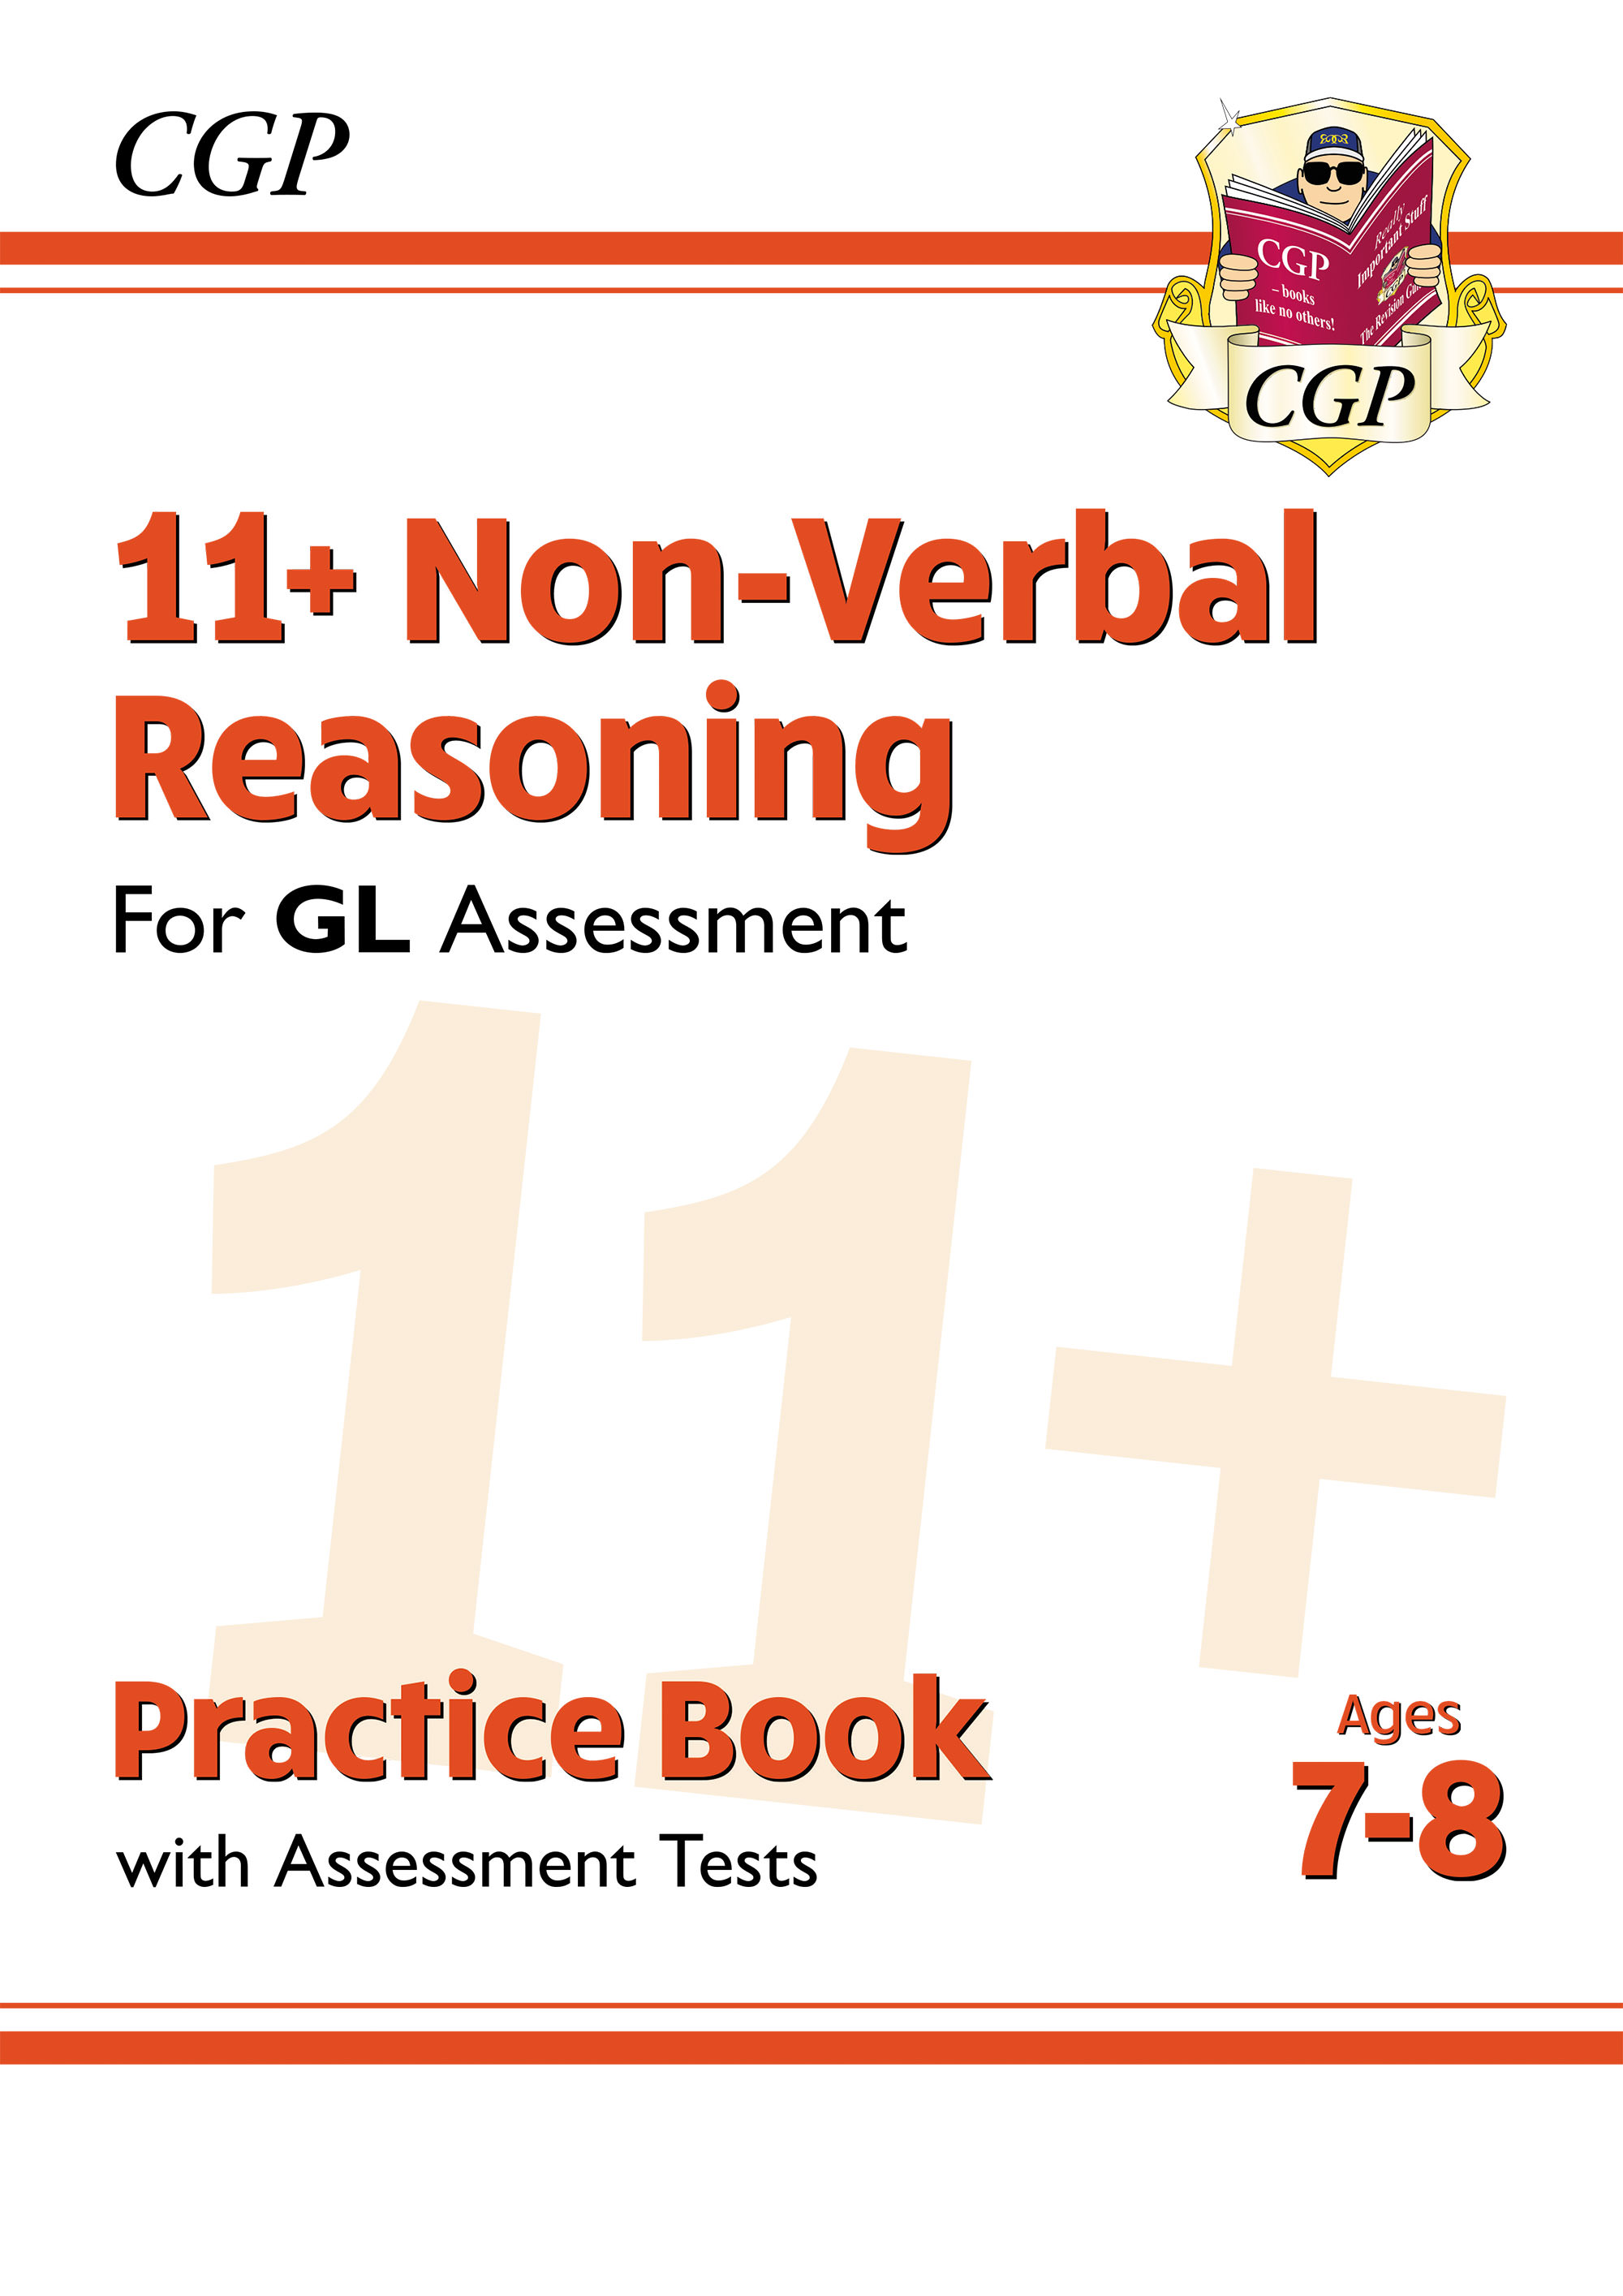 N3QE2DK - New 11+ GL Non-Verbal Reasoning Practice Book & Assessment Tests - Ages 7-8